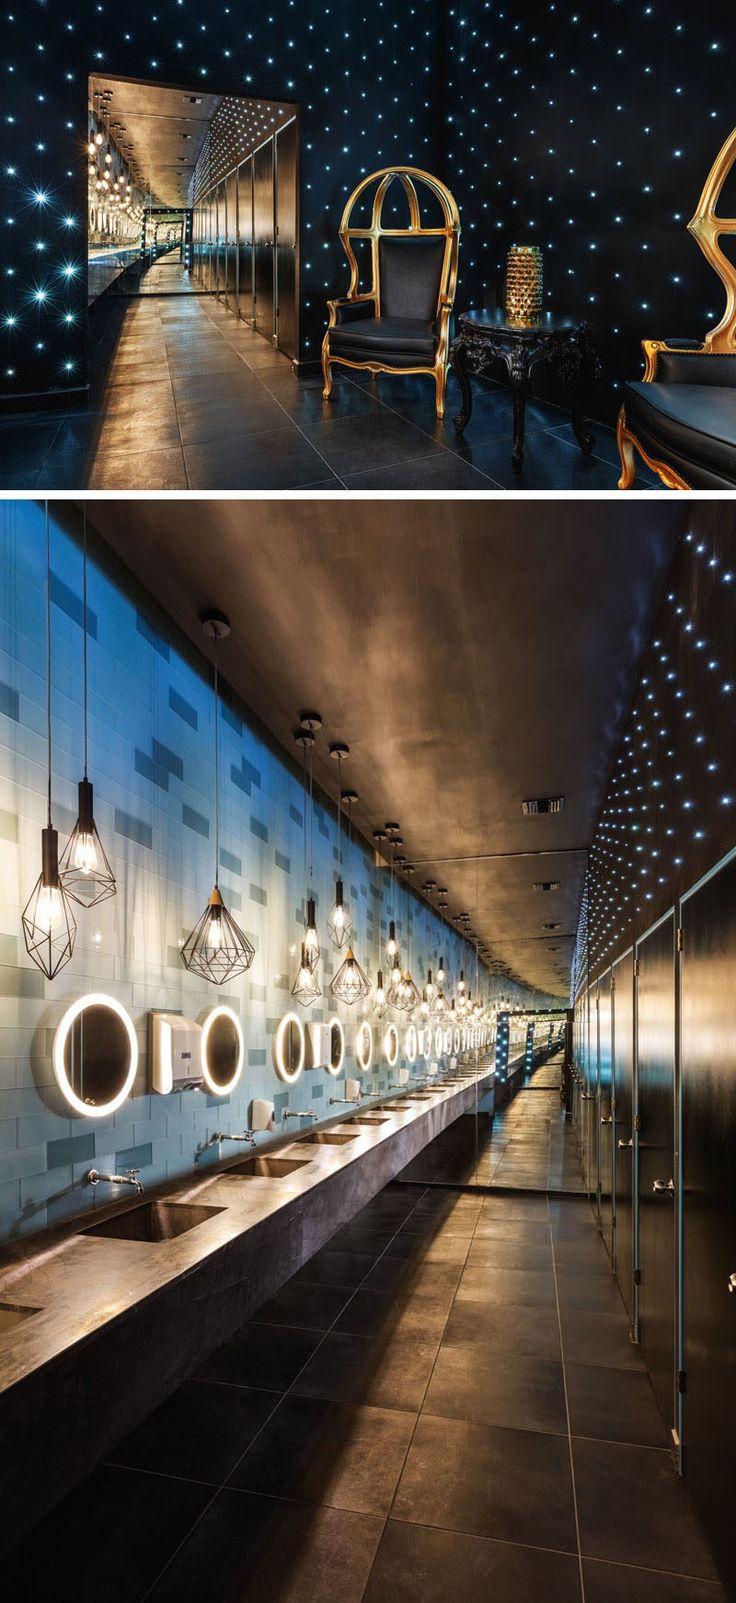 In this nightclub bathroom, a mirror makes the space look larger than it actually is, and small lights create a starry sky effect.